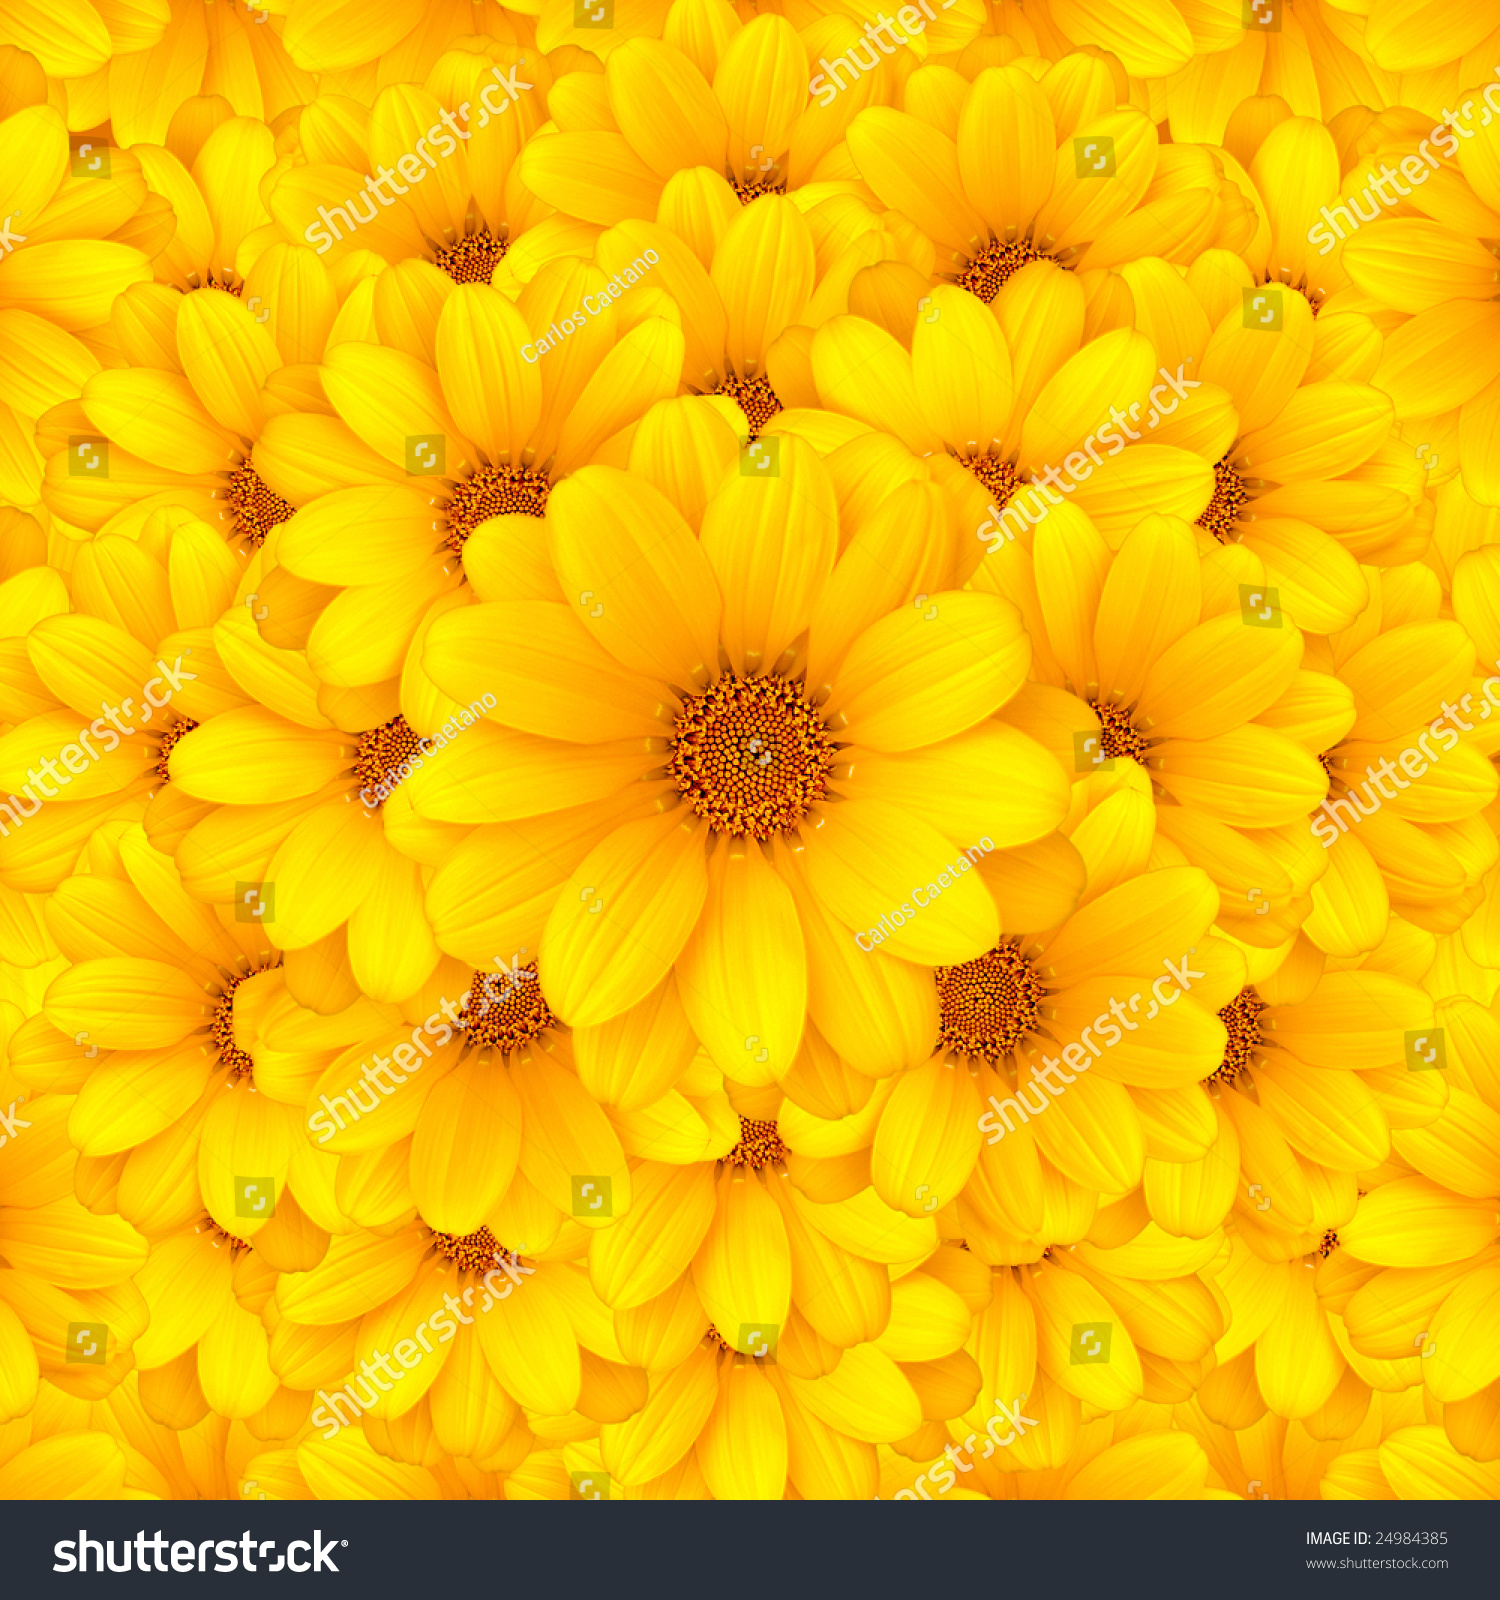 Beautiful yellow flower background stock photo edit now 24984385 beautiful yellow flower background izmirmasajfo